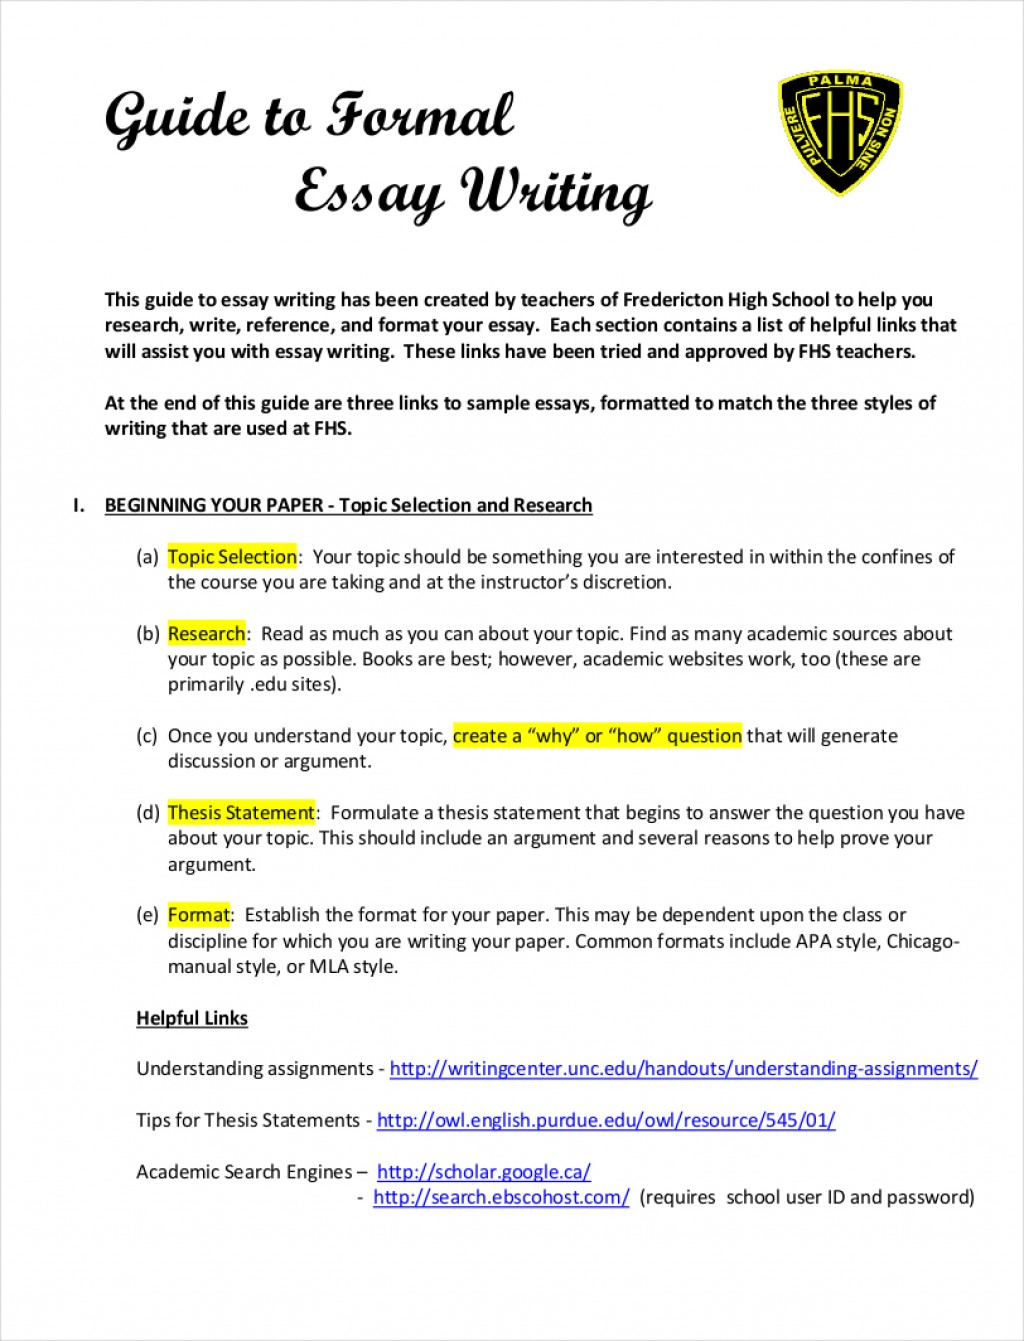 004 Essay Example Samples Of Formal Essays Free Pdf Format Download Writing Styles Sample G Creative Good Comparing Ielts On Analysis English Persuasive Unforgettable In Examples For High School Students Large